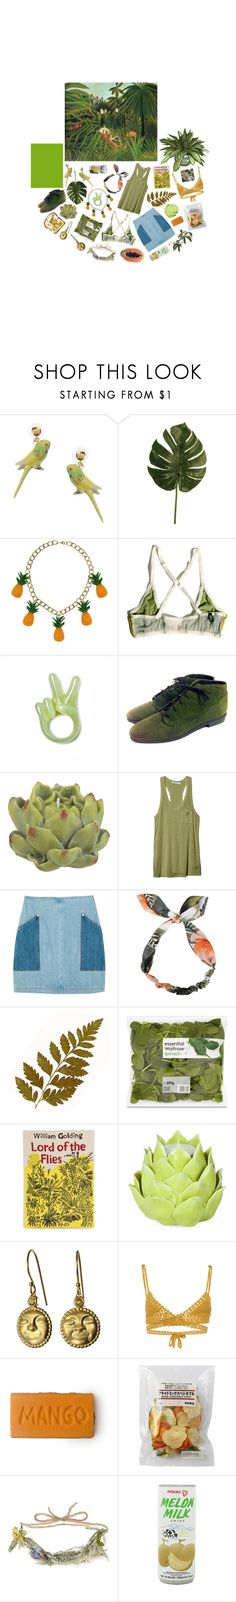 """""""sw 6712 luau green"""" by flapper-shoes ❤ liked on Polyvore featuring Nach, Topshop, Crate and Barrel, T By Alexander Wang, Olympia Le-Tan, Zara Home, SHE MADE ME, Littledoe and Jo Malone"""